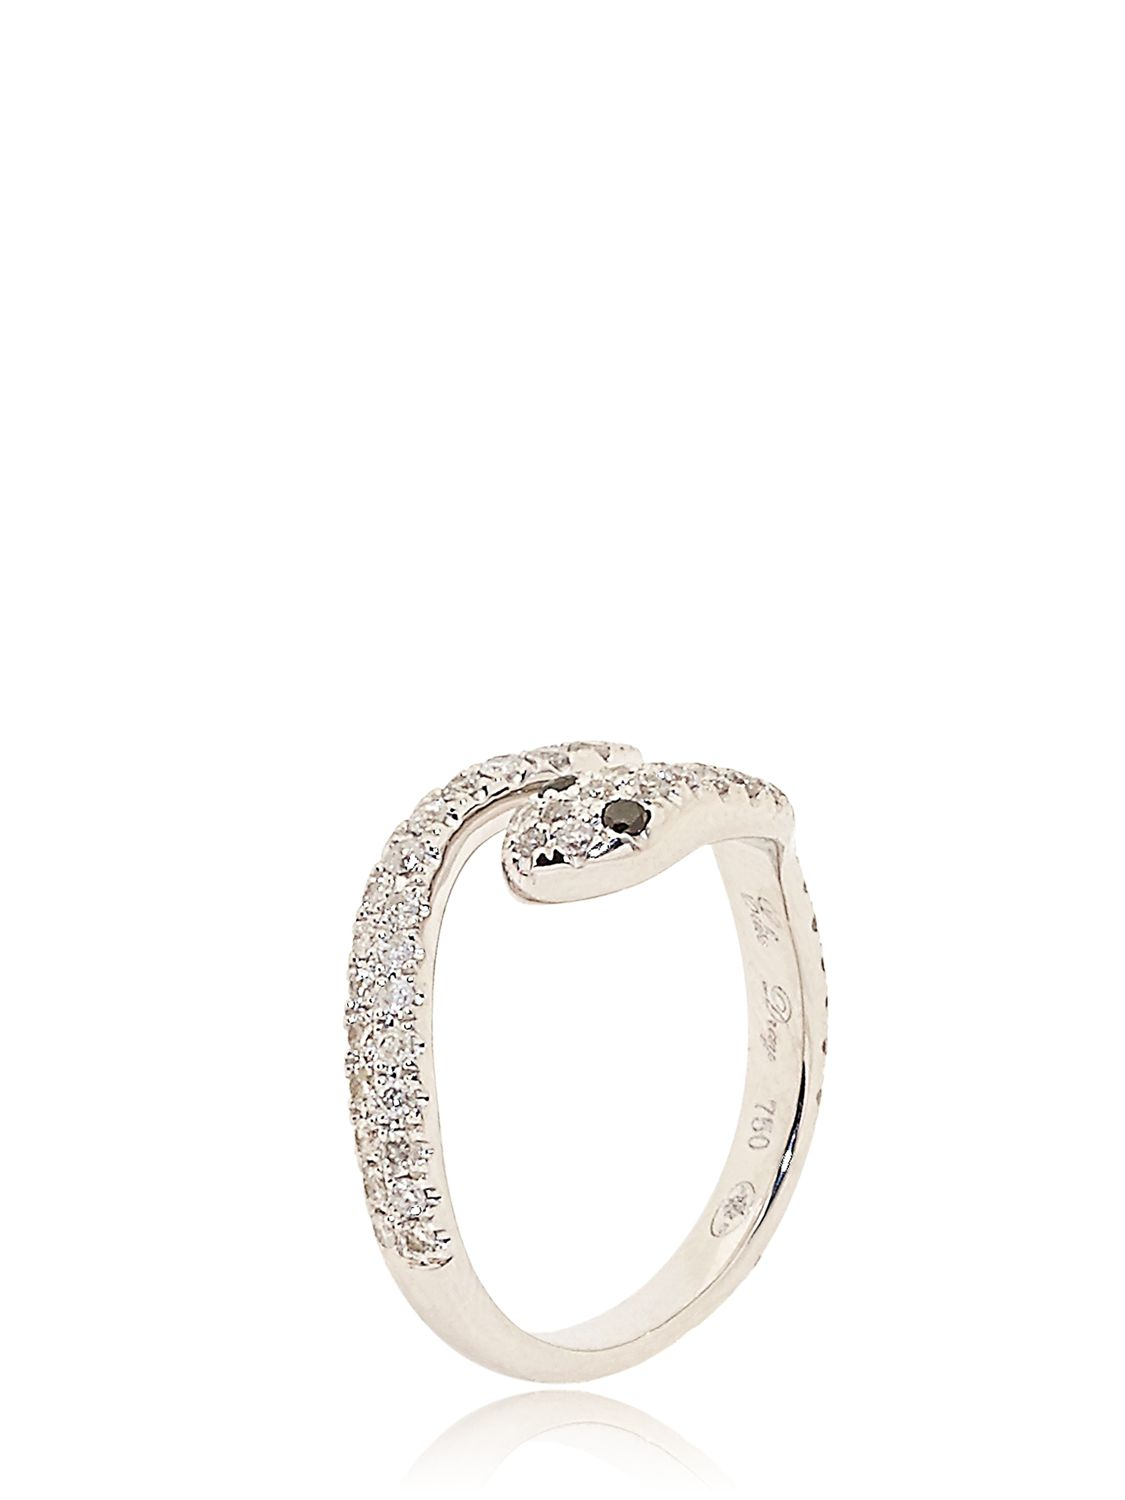 Elise Dray diamond three-piece Piccadilly ring - Metallic p2rnvnbLy3